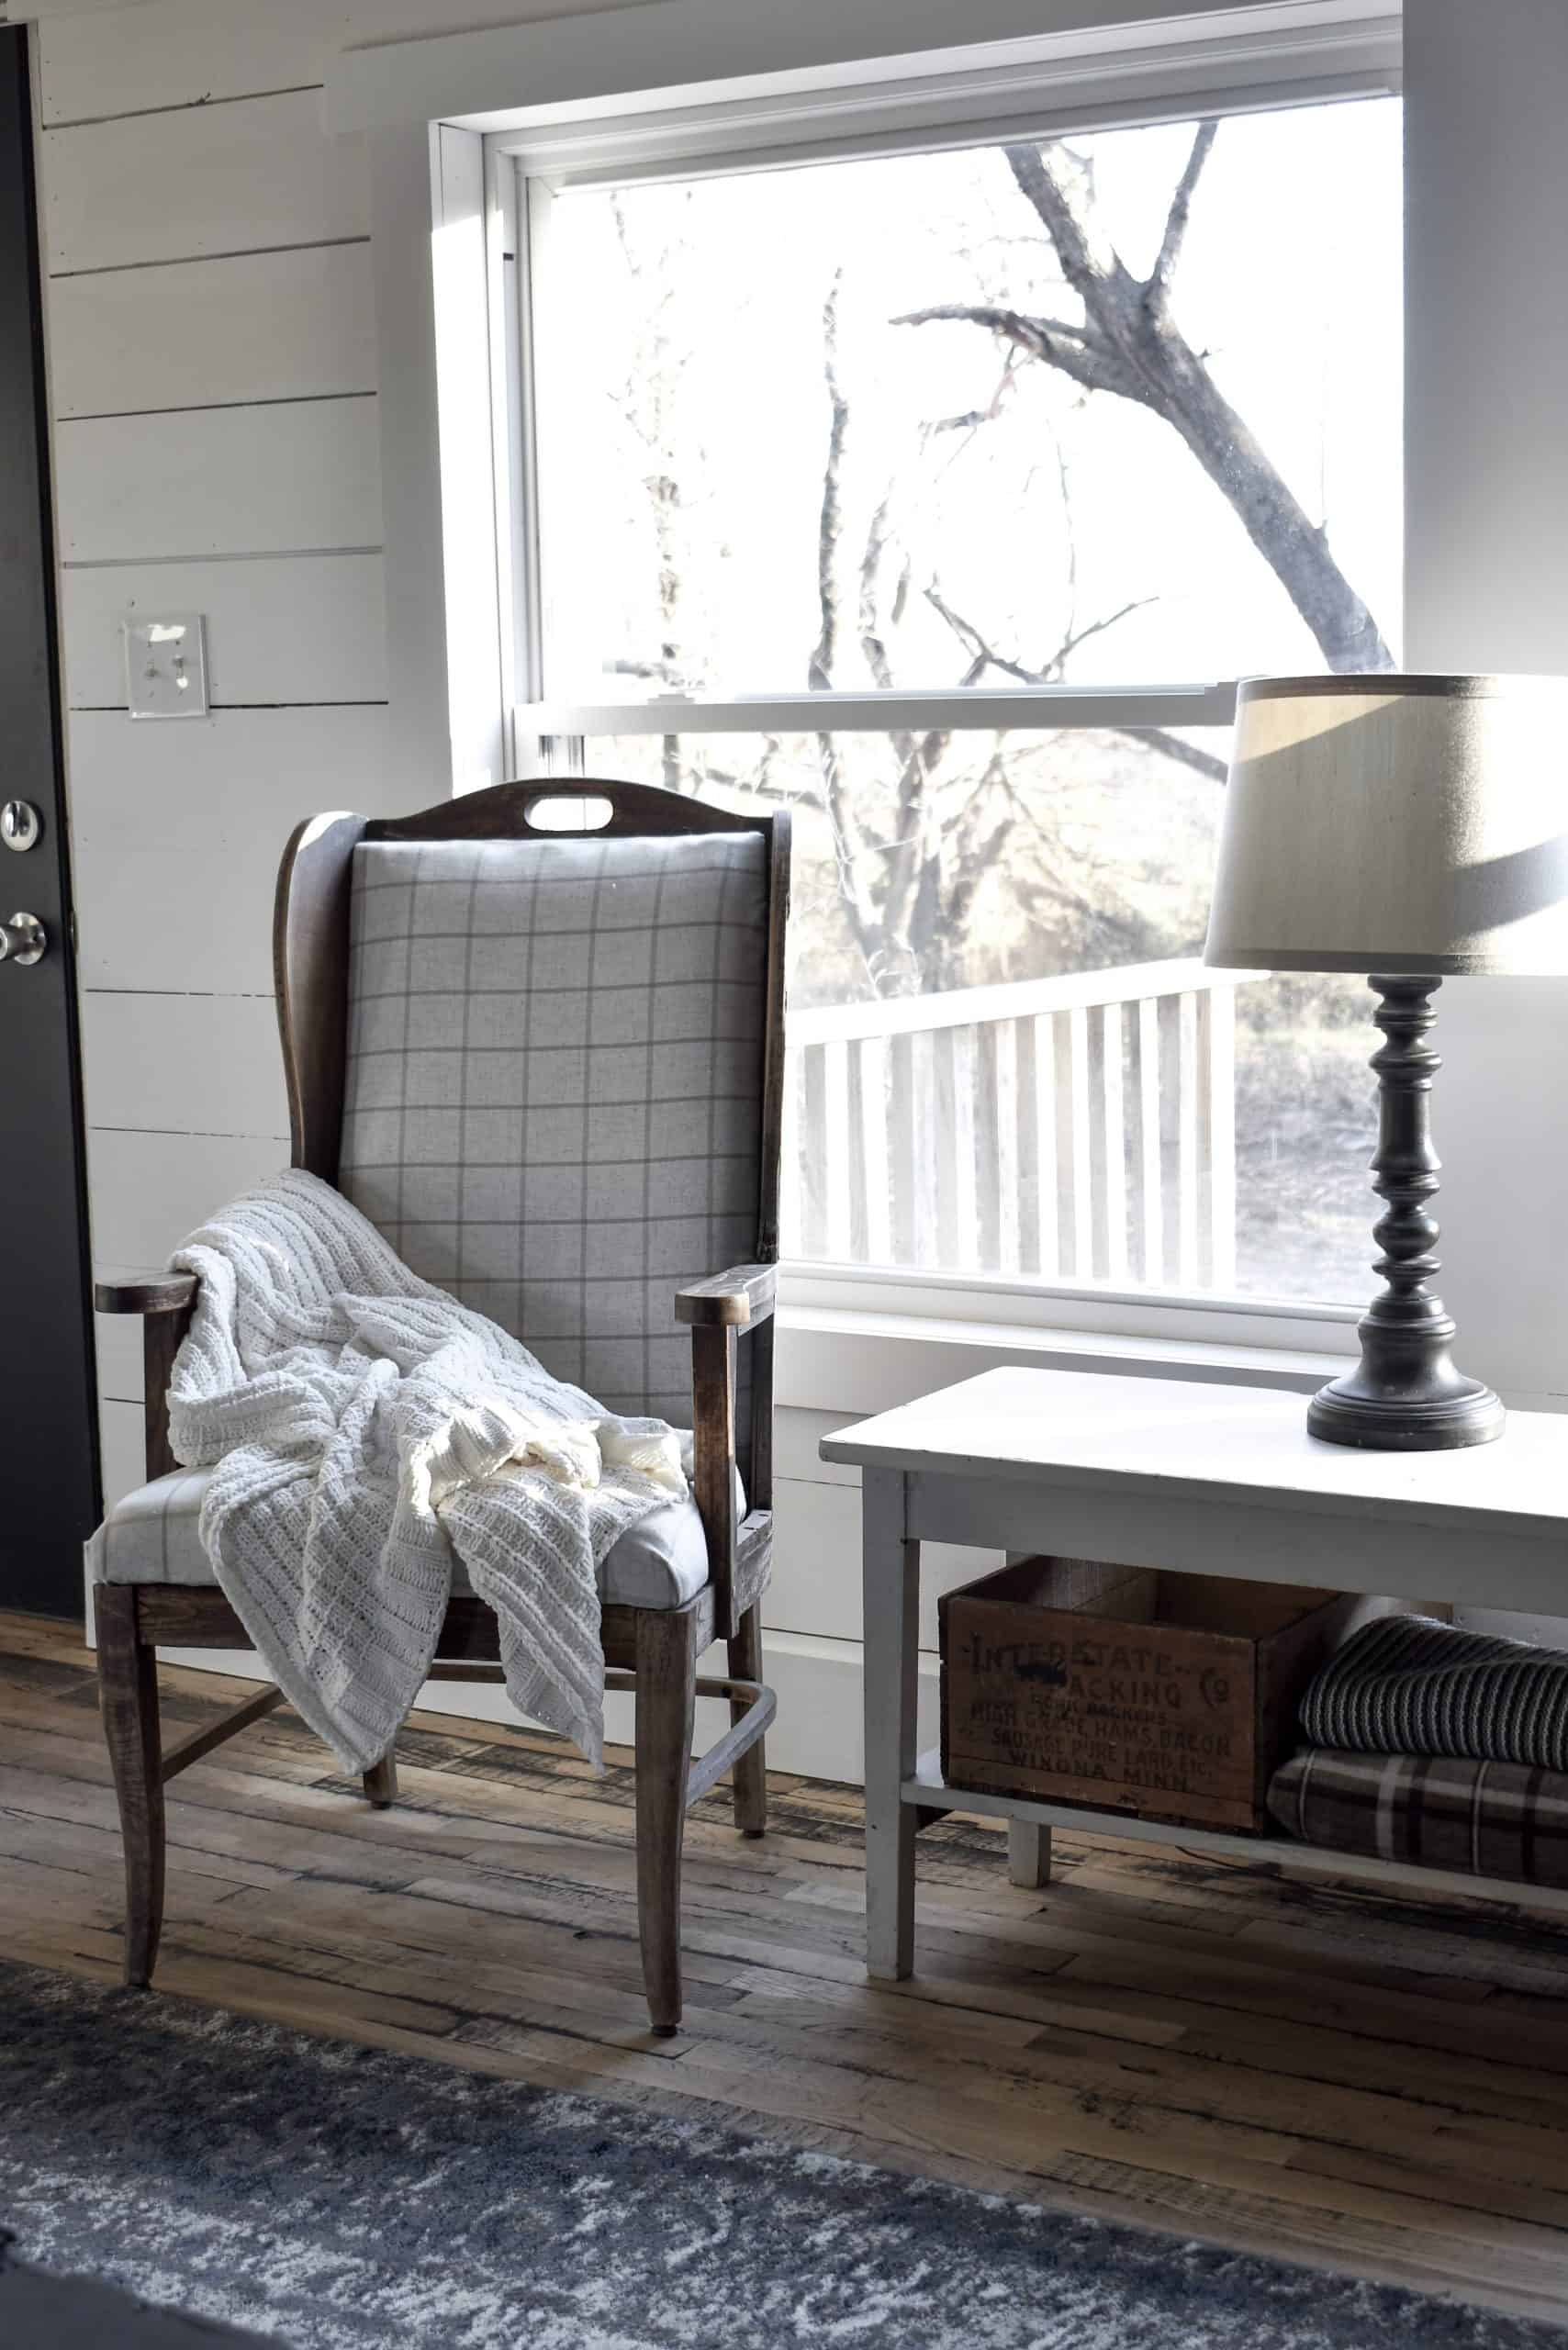 Antique Wing Back Chair in Simple Rustic Farmhouse Style Home